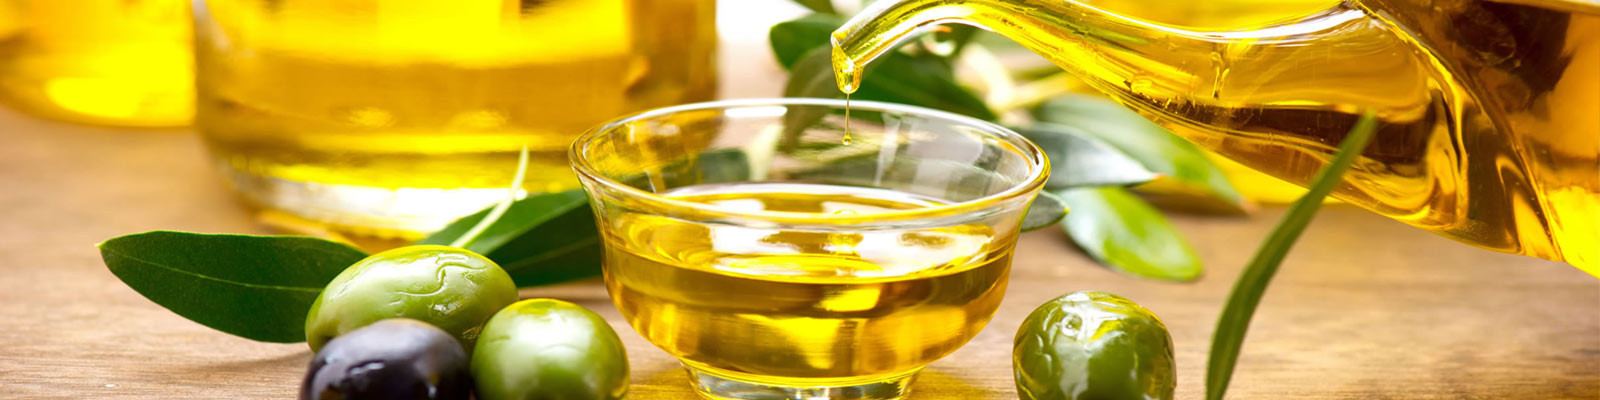 aceite-olive-page-s.jpg